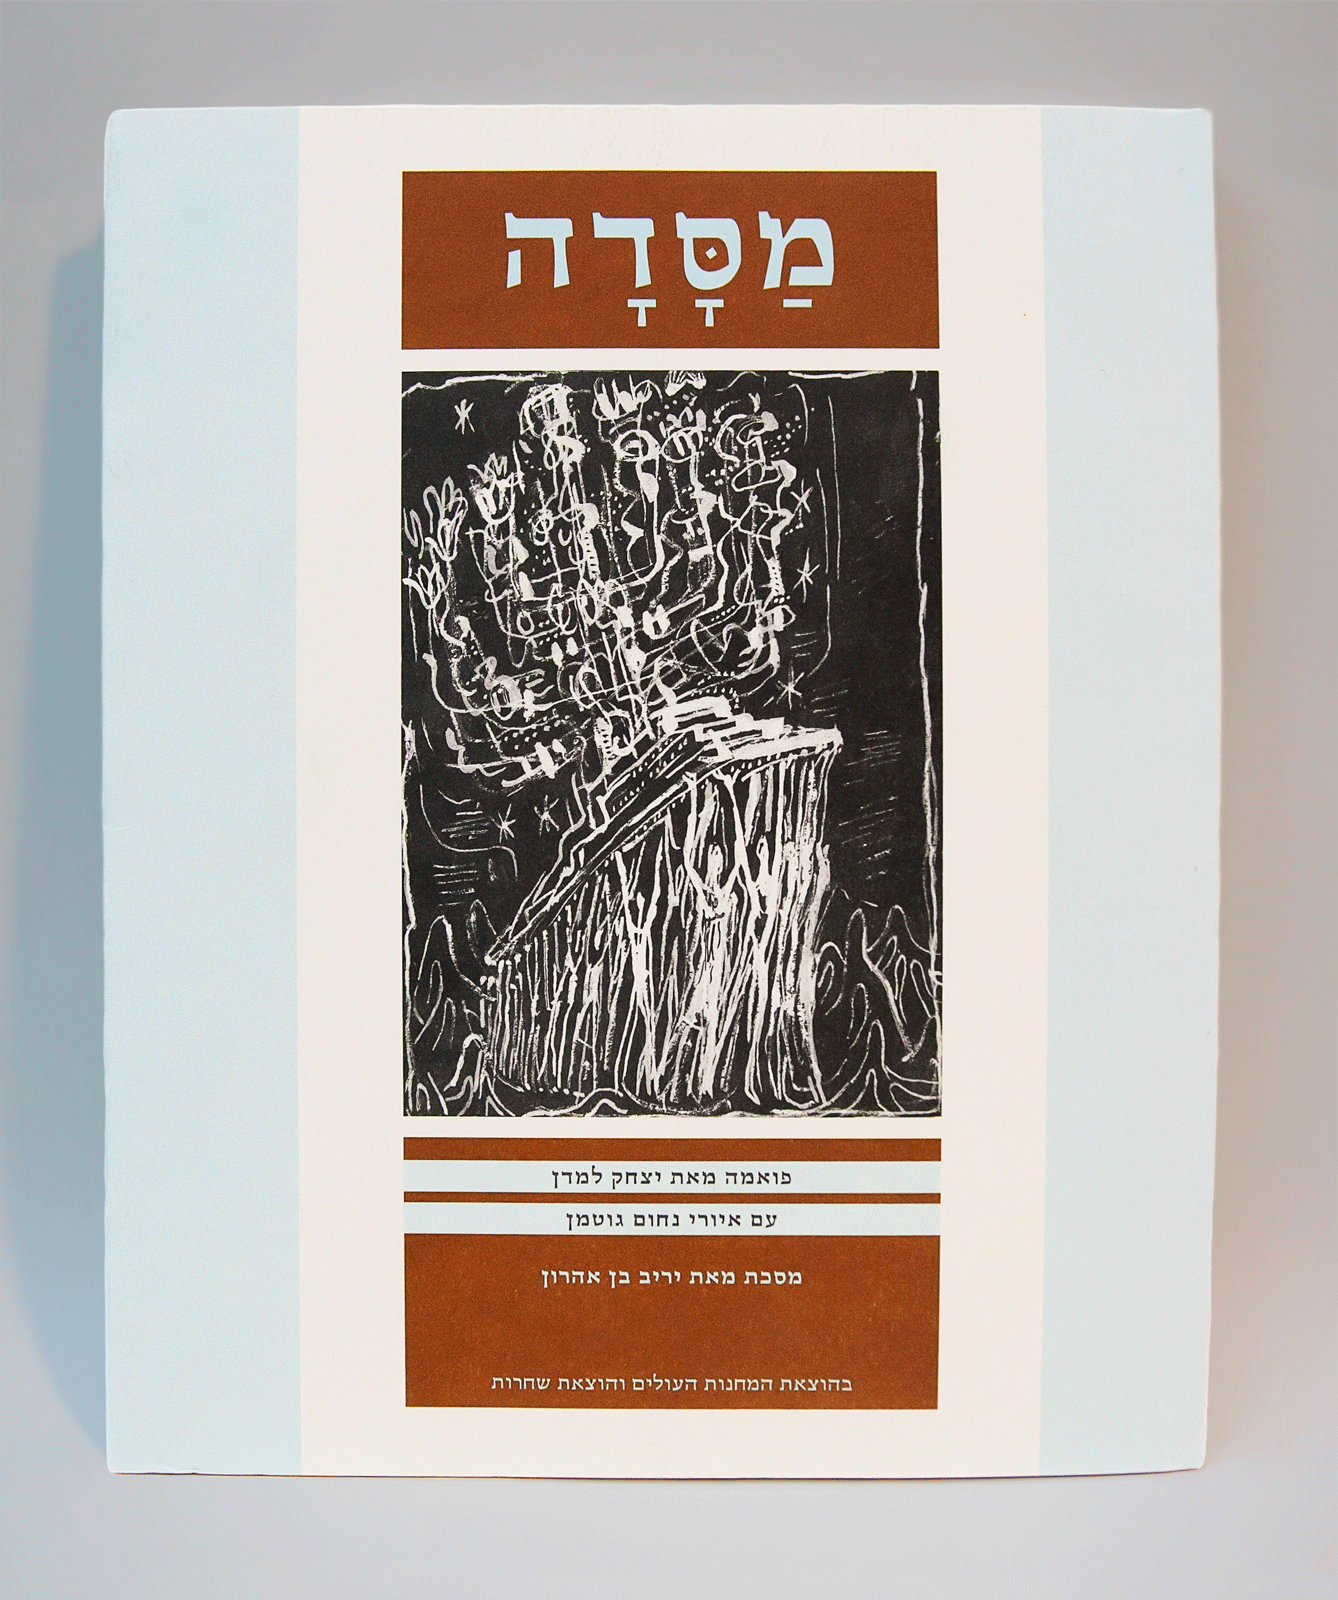 http://bigeyes.co.il/wp-content/uploads/2019/04/masada-front.png